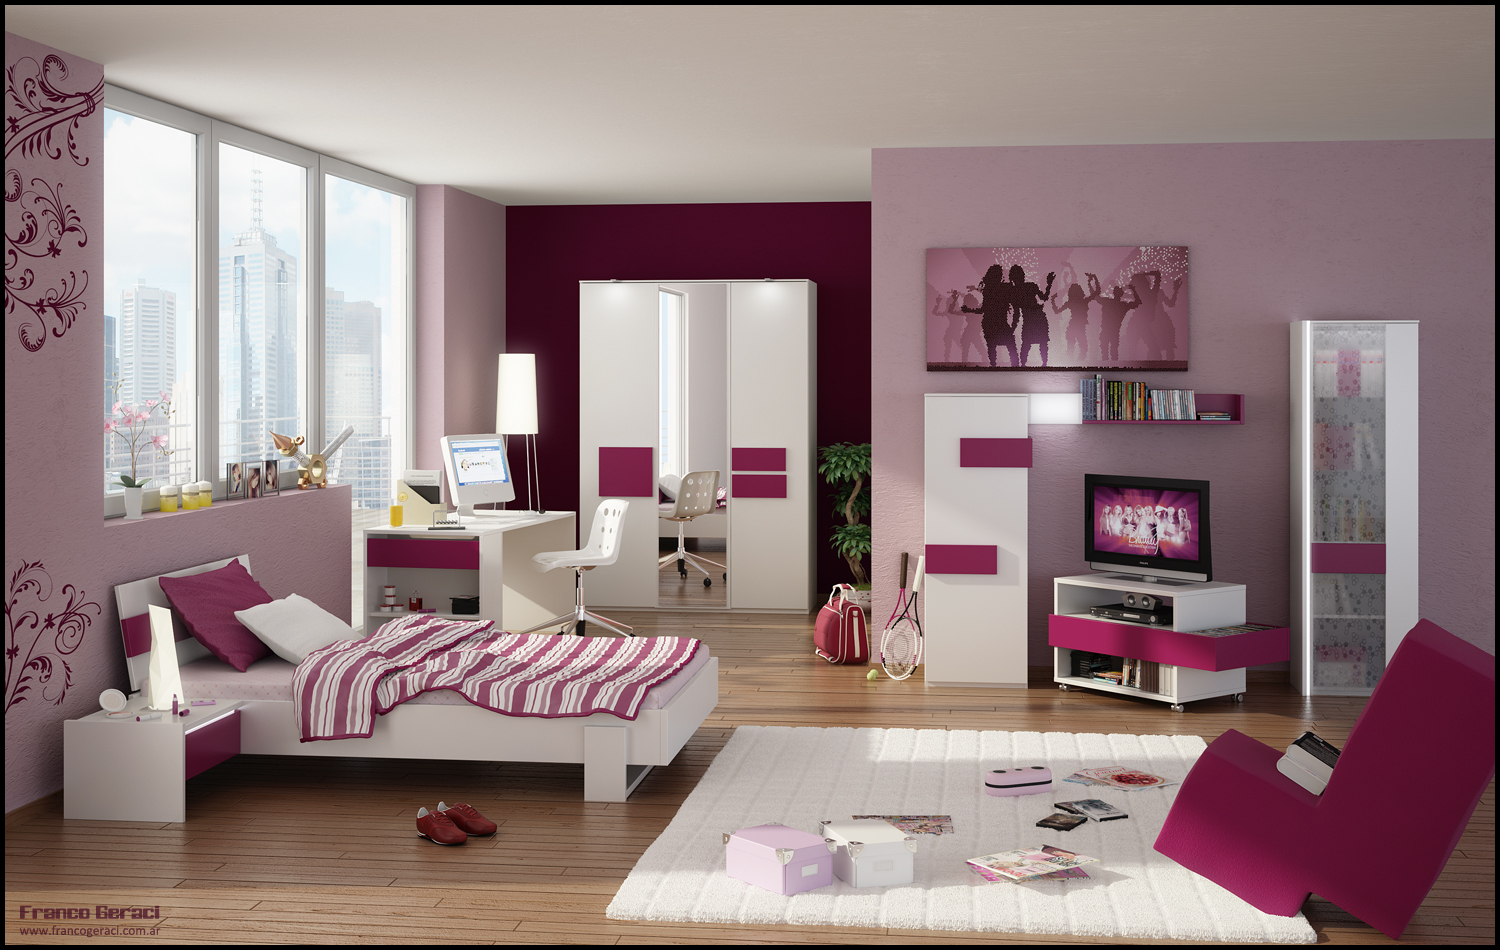 Teenage room designs for Bedroom ideas for teens